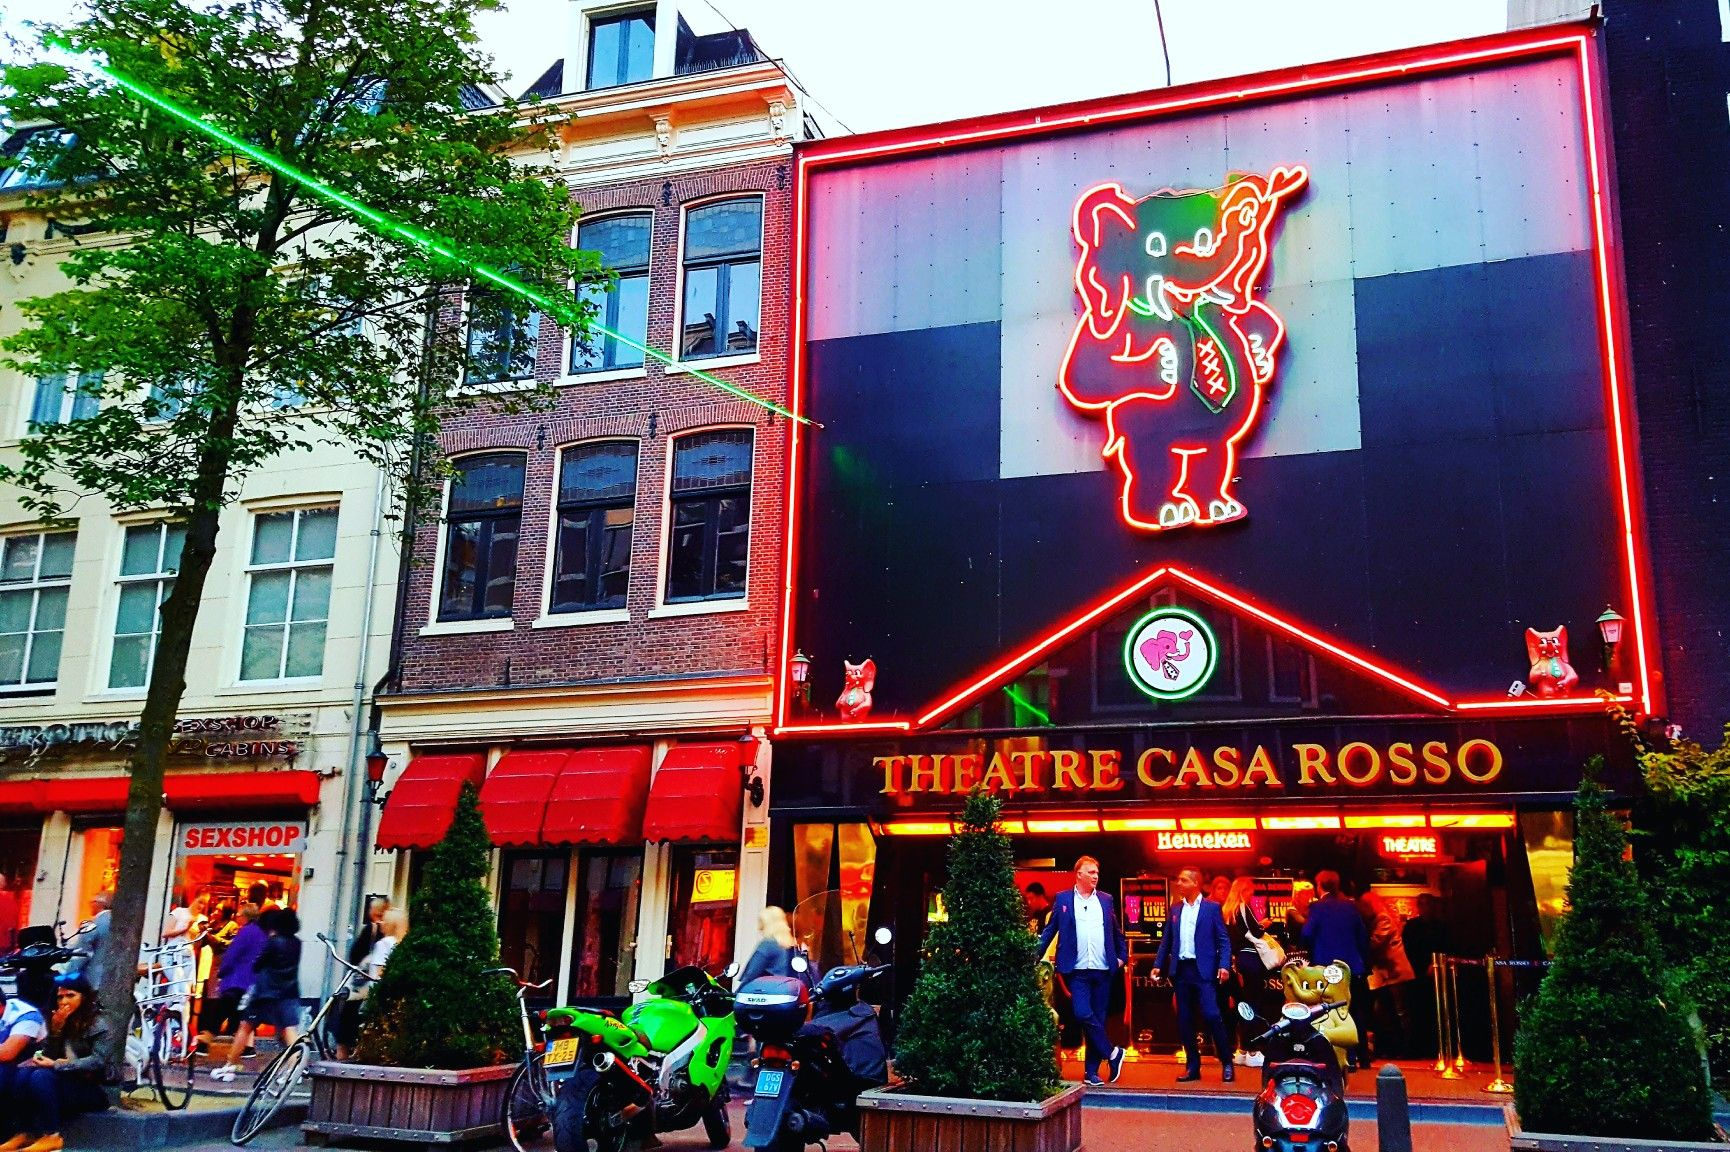 The Casa Rosso Theatre Is One Of The Most Famous Places In The Red